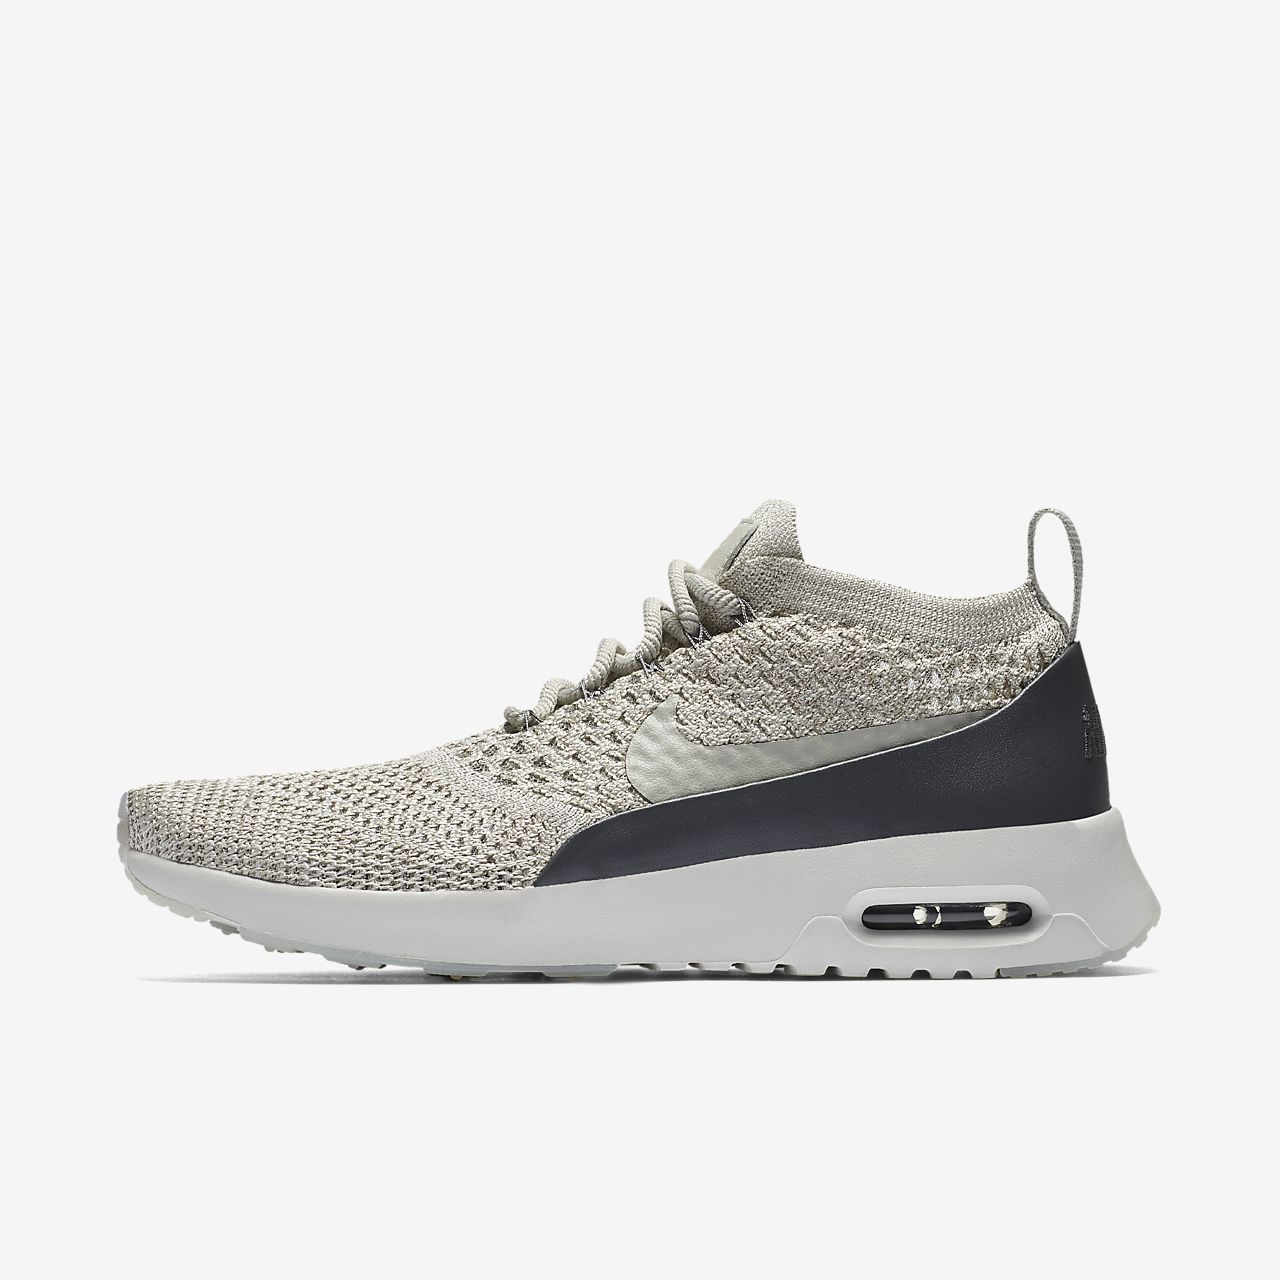 Nike W AIR MAX THEA Flyknit Bianco Blu Rosa UK 5 6 6.5 7 8